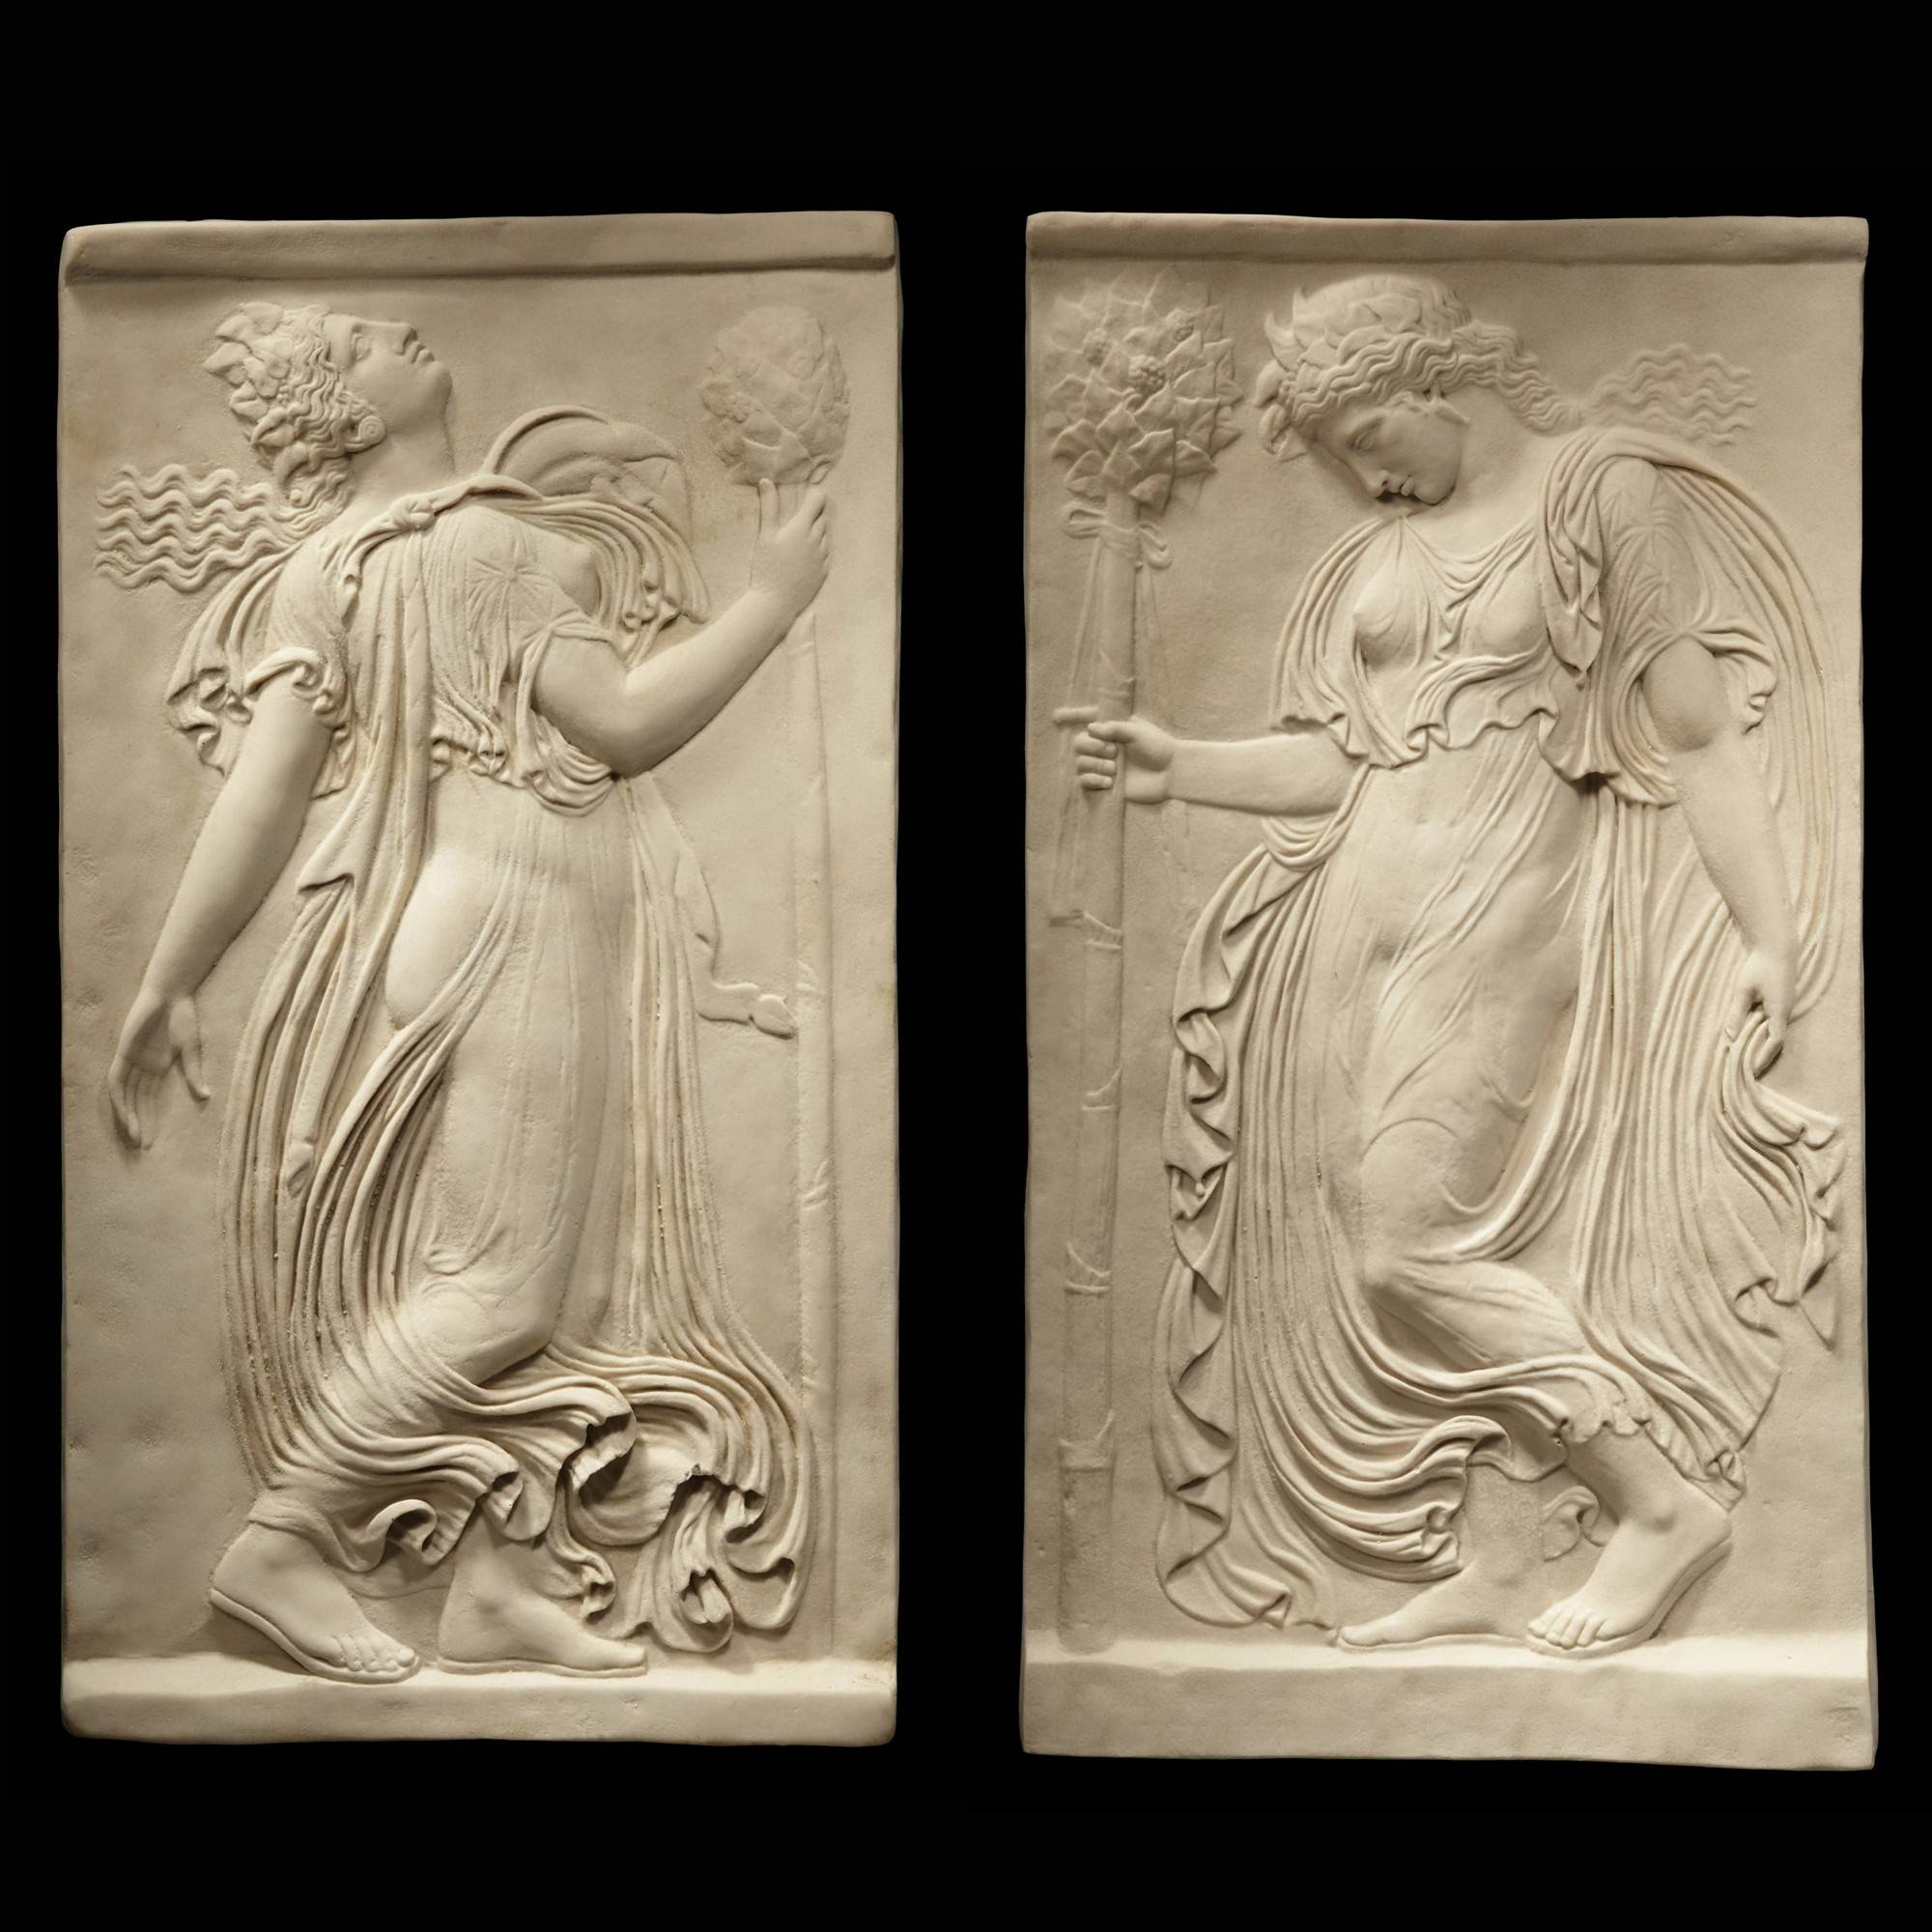 Greek Goddess Pair – Ancient Greek Marble Wall Relief Plaque | S&s Regarding Latest Ancient Greek Wall Art (View 5 of 25)